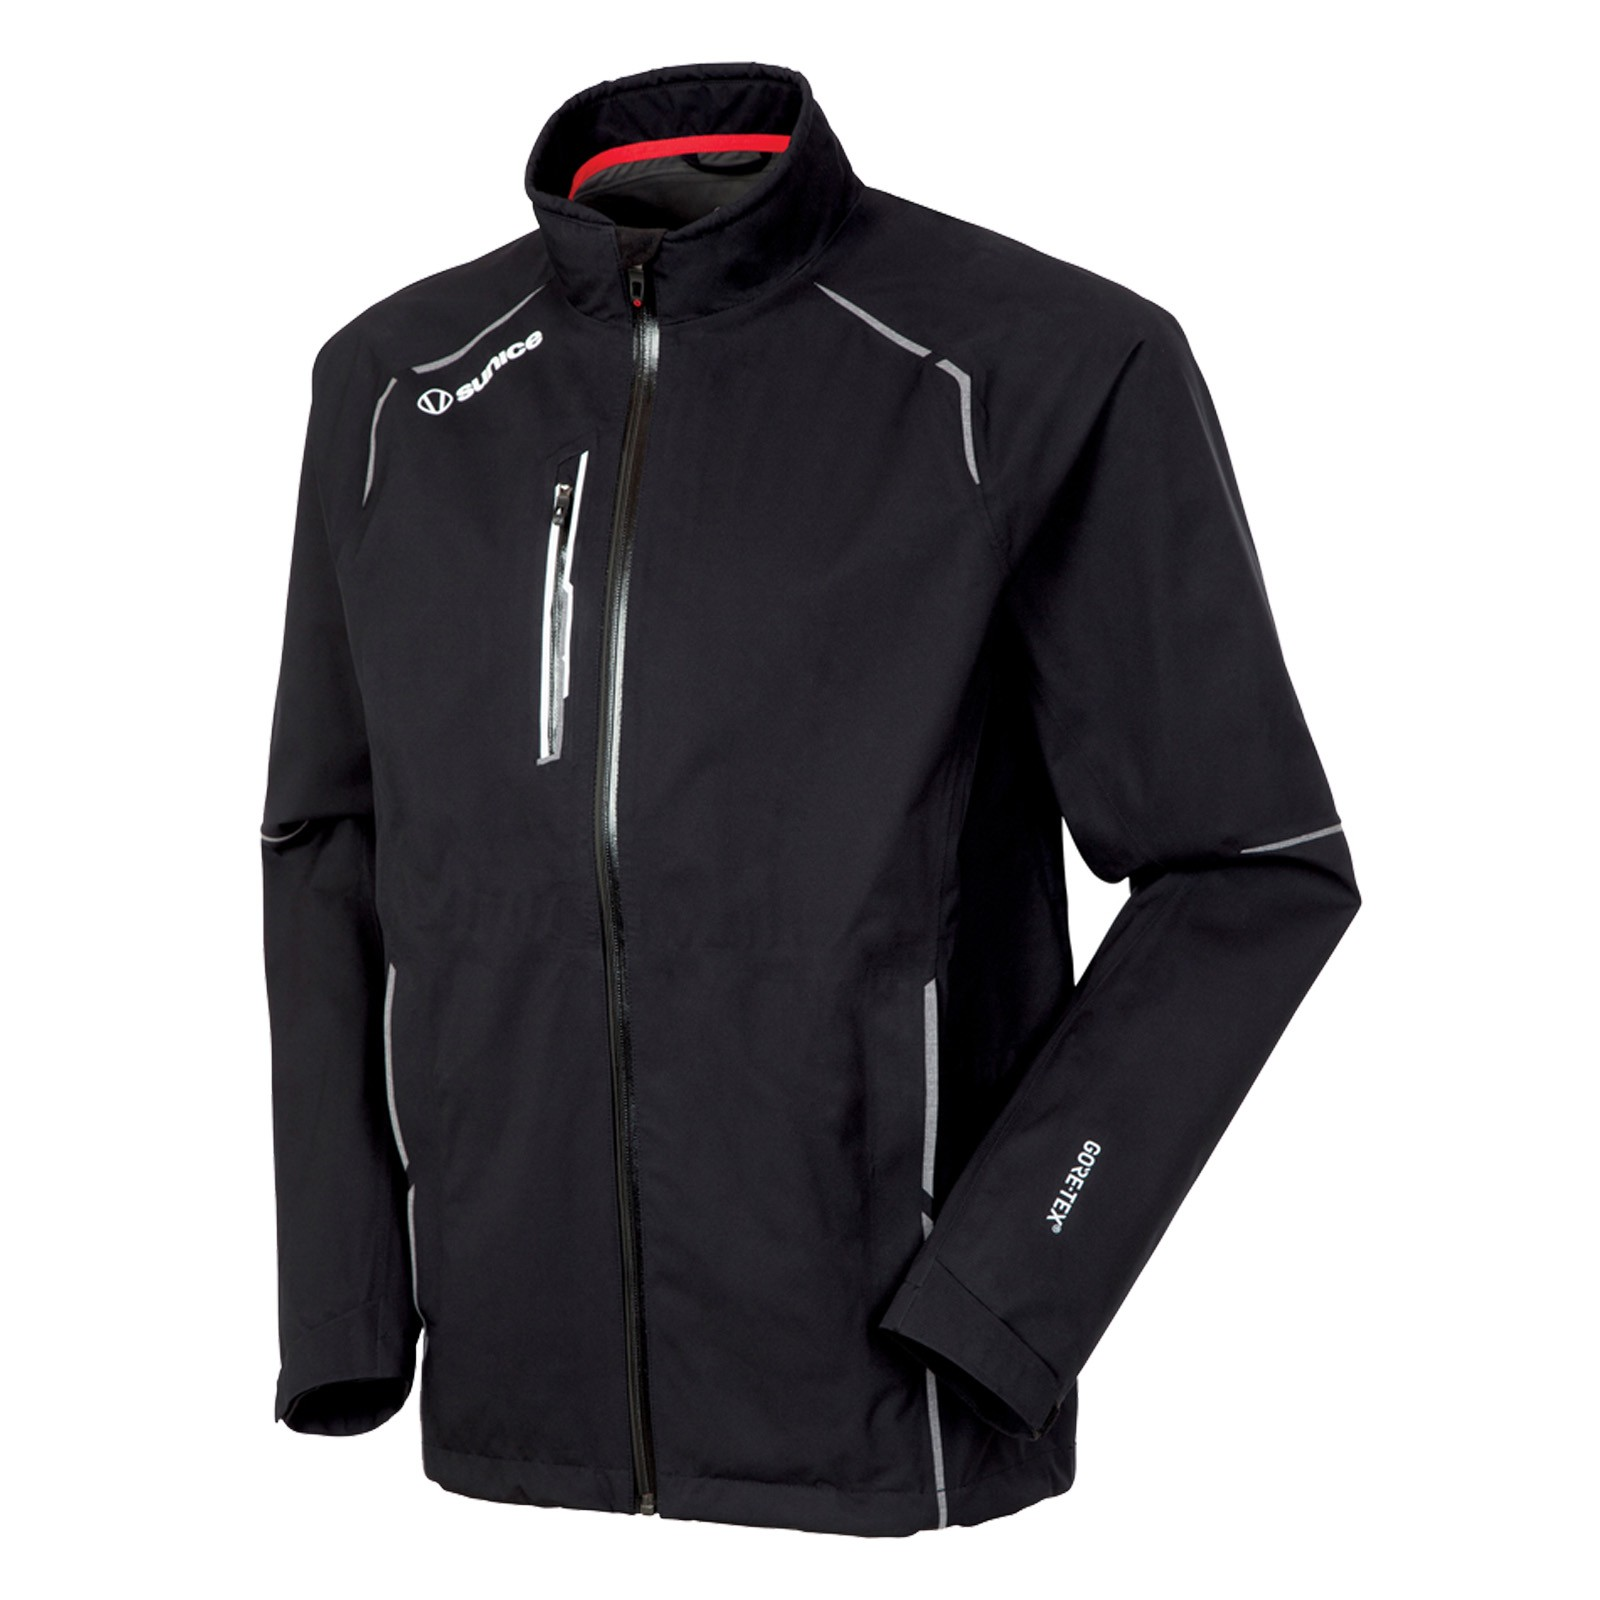 Sunice Orion Gore-Tex Jackets